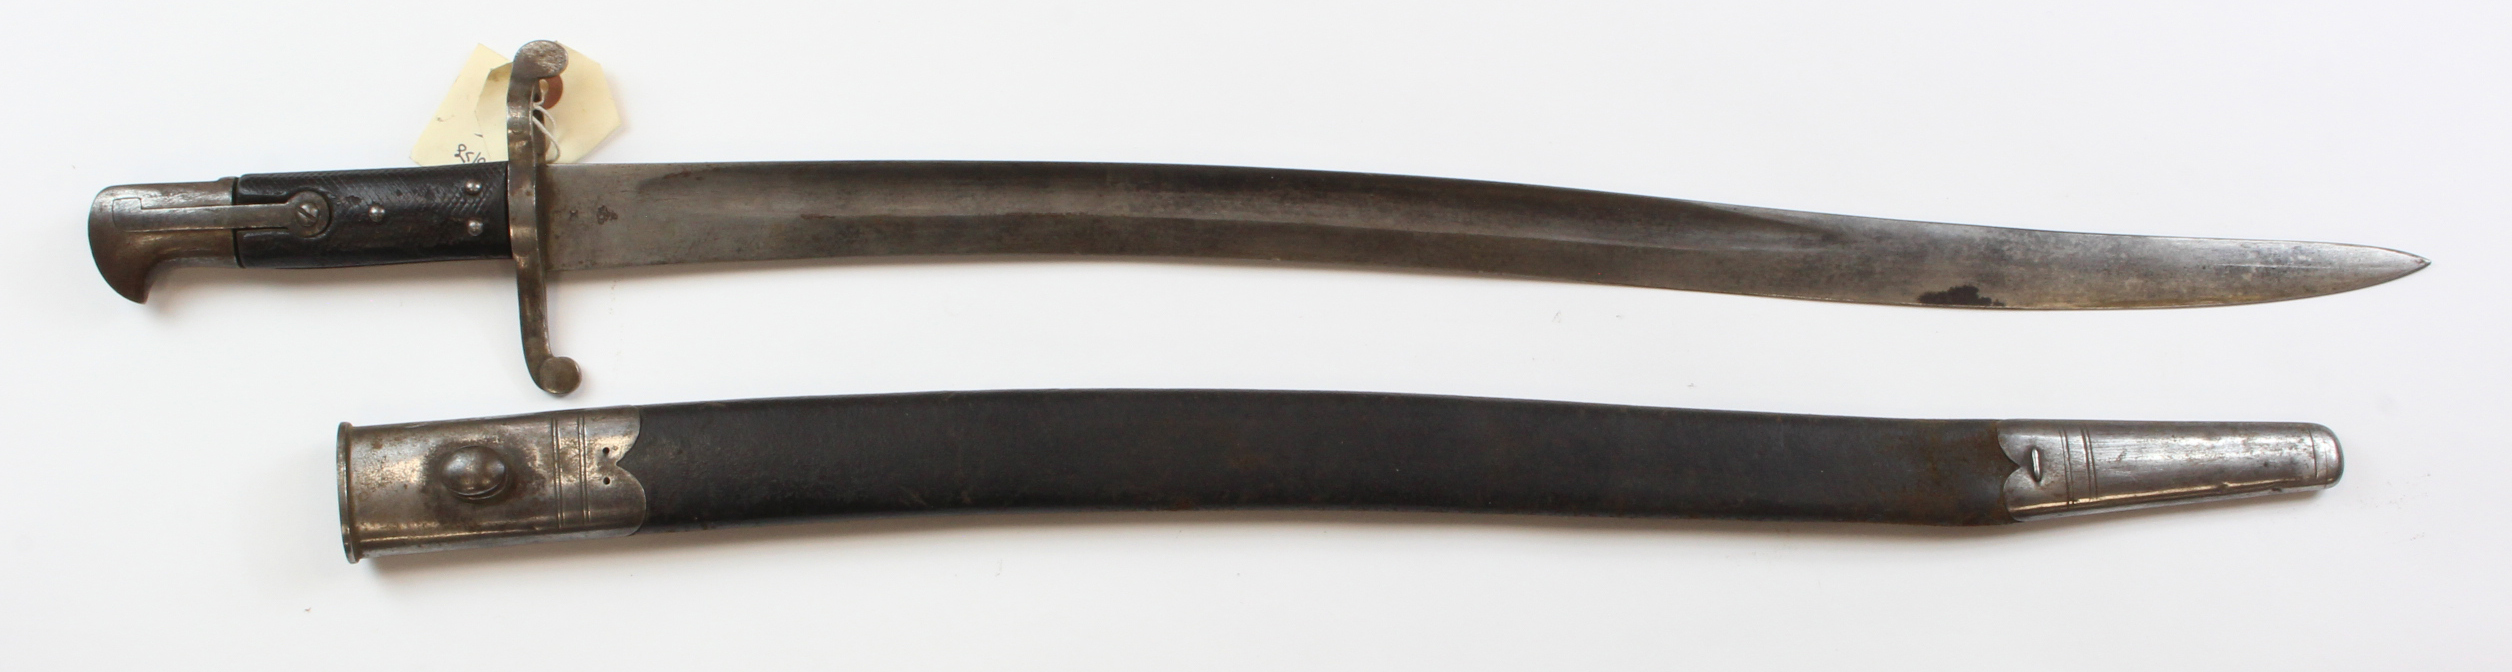 "Lot 1044 - Bayonet - British Pattern 1856 Sword Bayonet. Blade 23"". Ricasso with WD mark, bend test and dated"